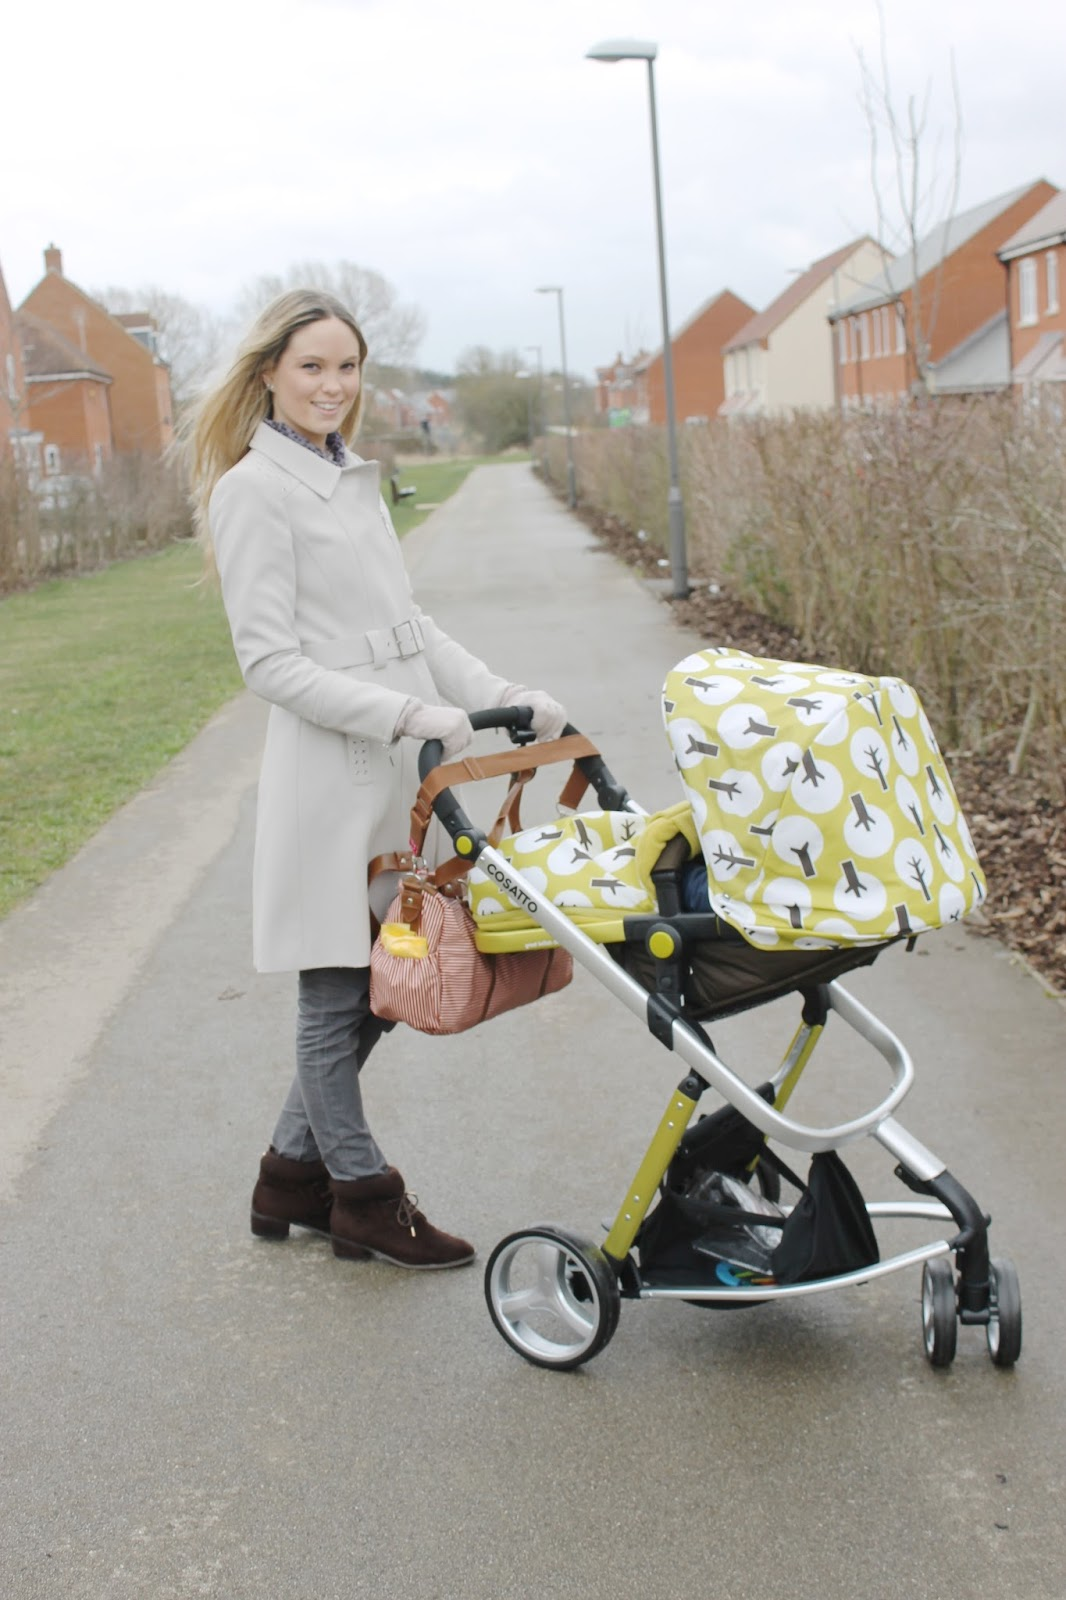 brand buddy, cosatto brand buddy, cosatto giggle, cosatto treet, giggle treet, mummy blog, family blog, pram review, pretty pram